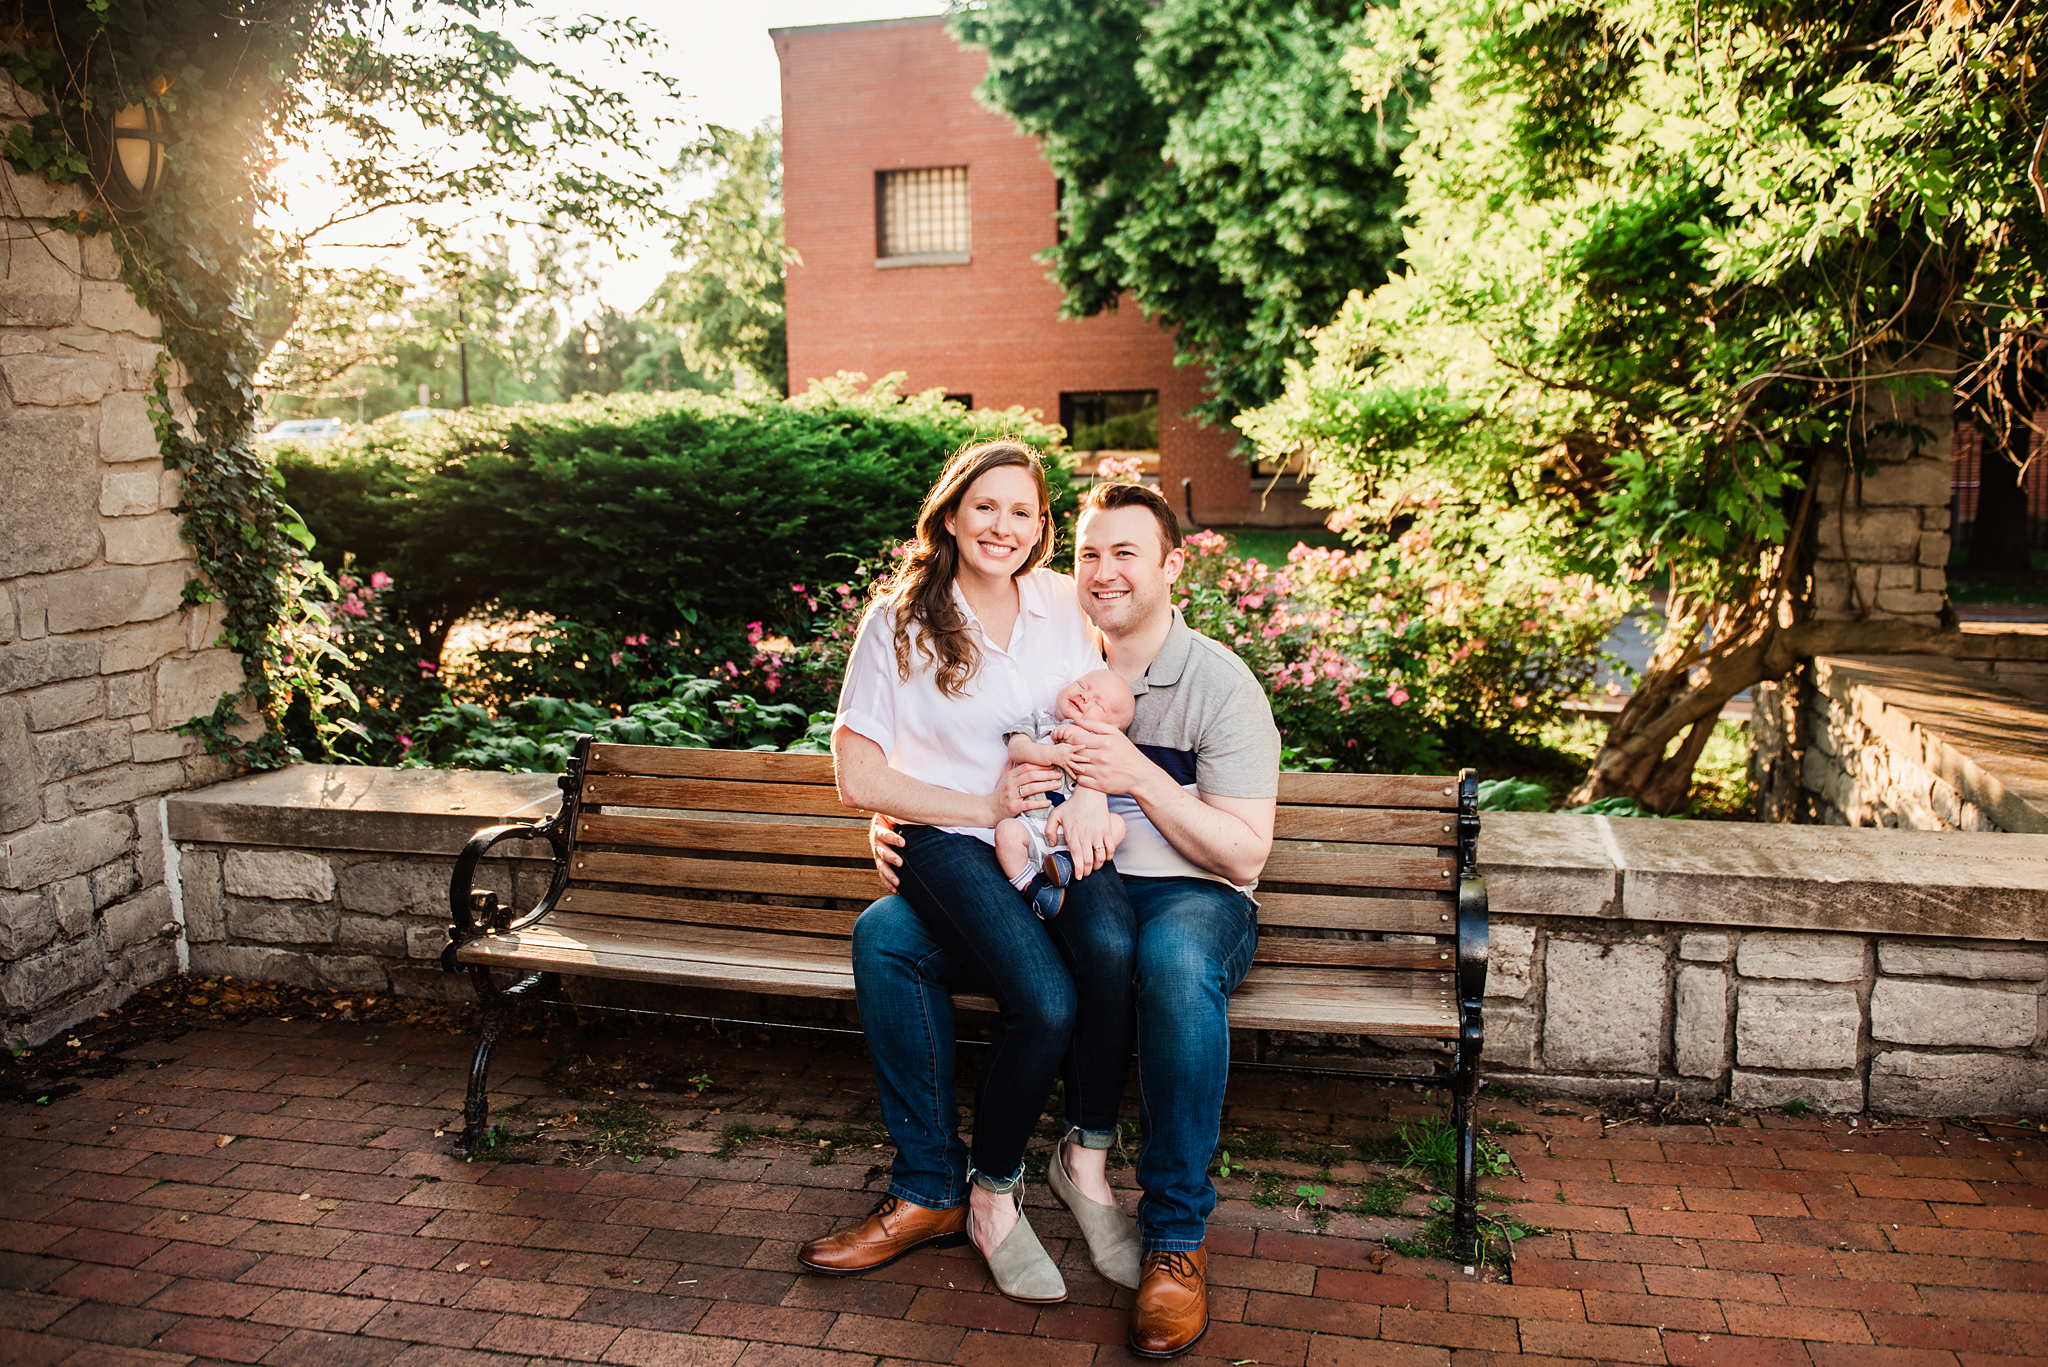 Franklin_Square_Park_Syracuse_Engagement_Session_JILL_STUDIO_Rochester_NY_Photographer_DSC_3986.jpg